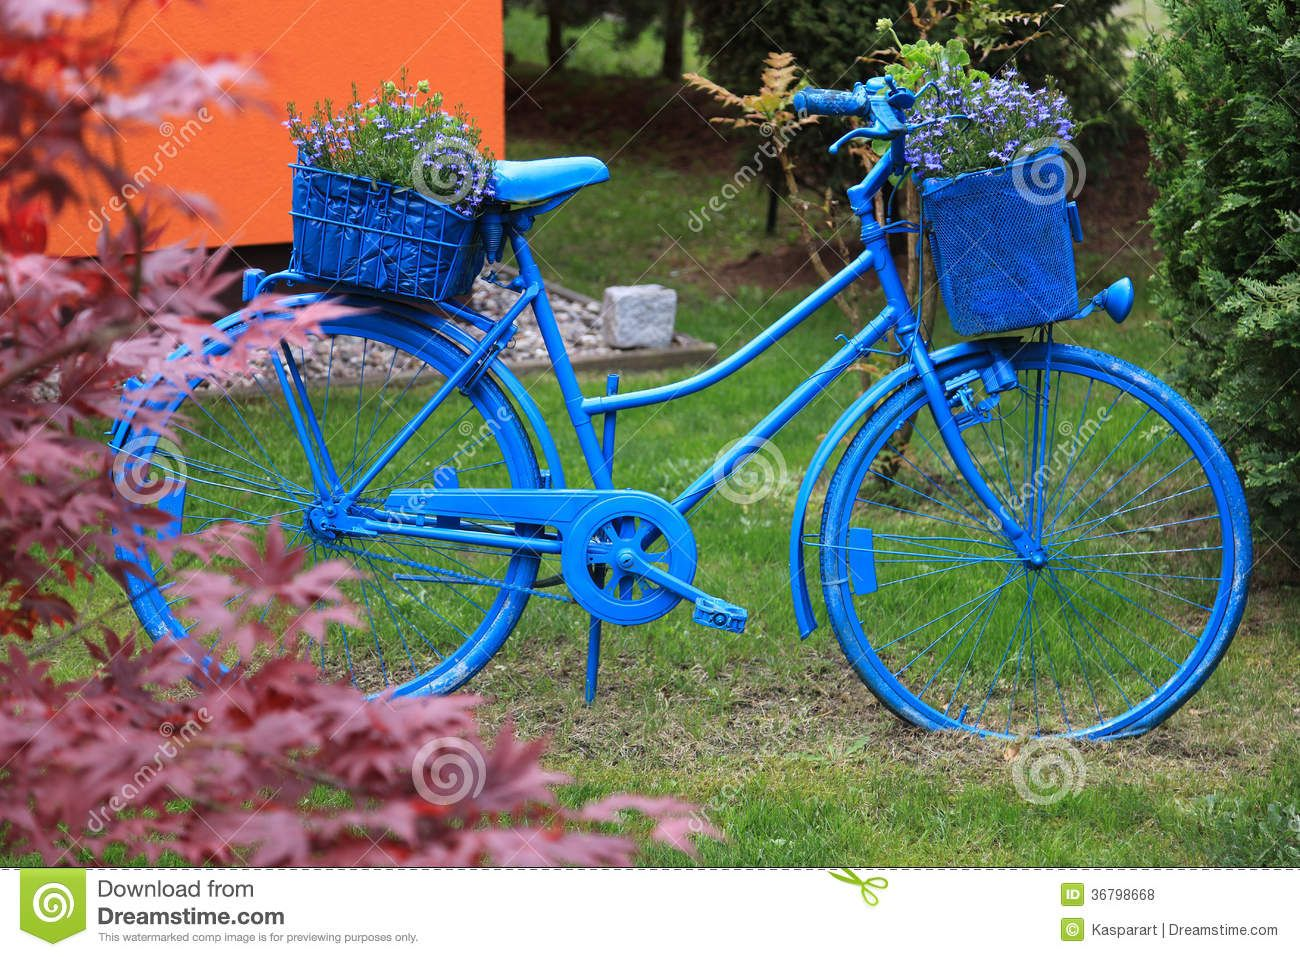 More Similar Stock Images Of Blue Bicycle Garden Decoration